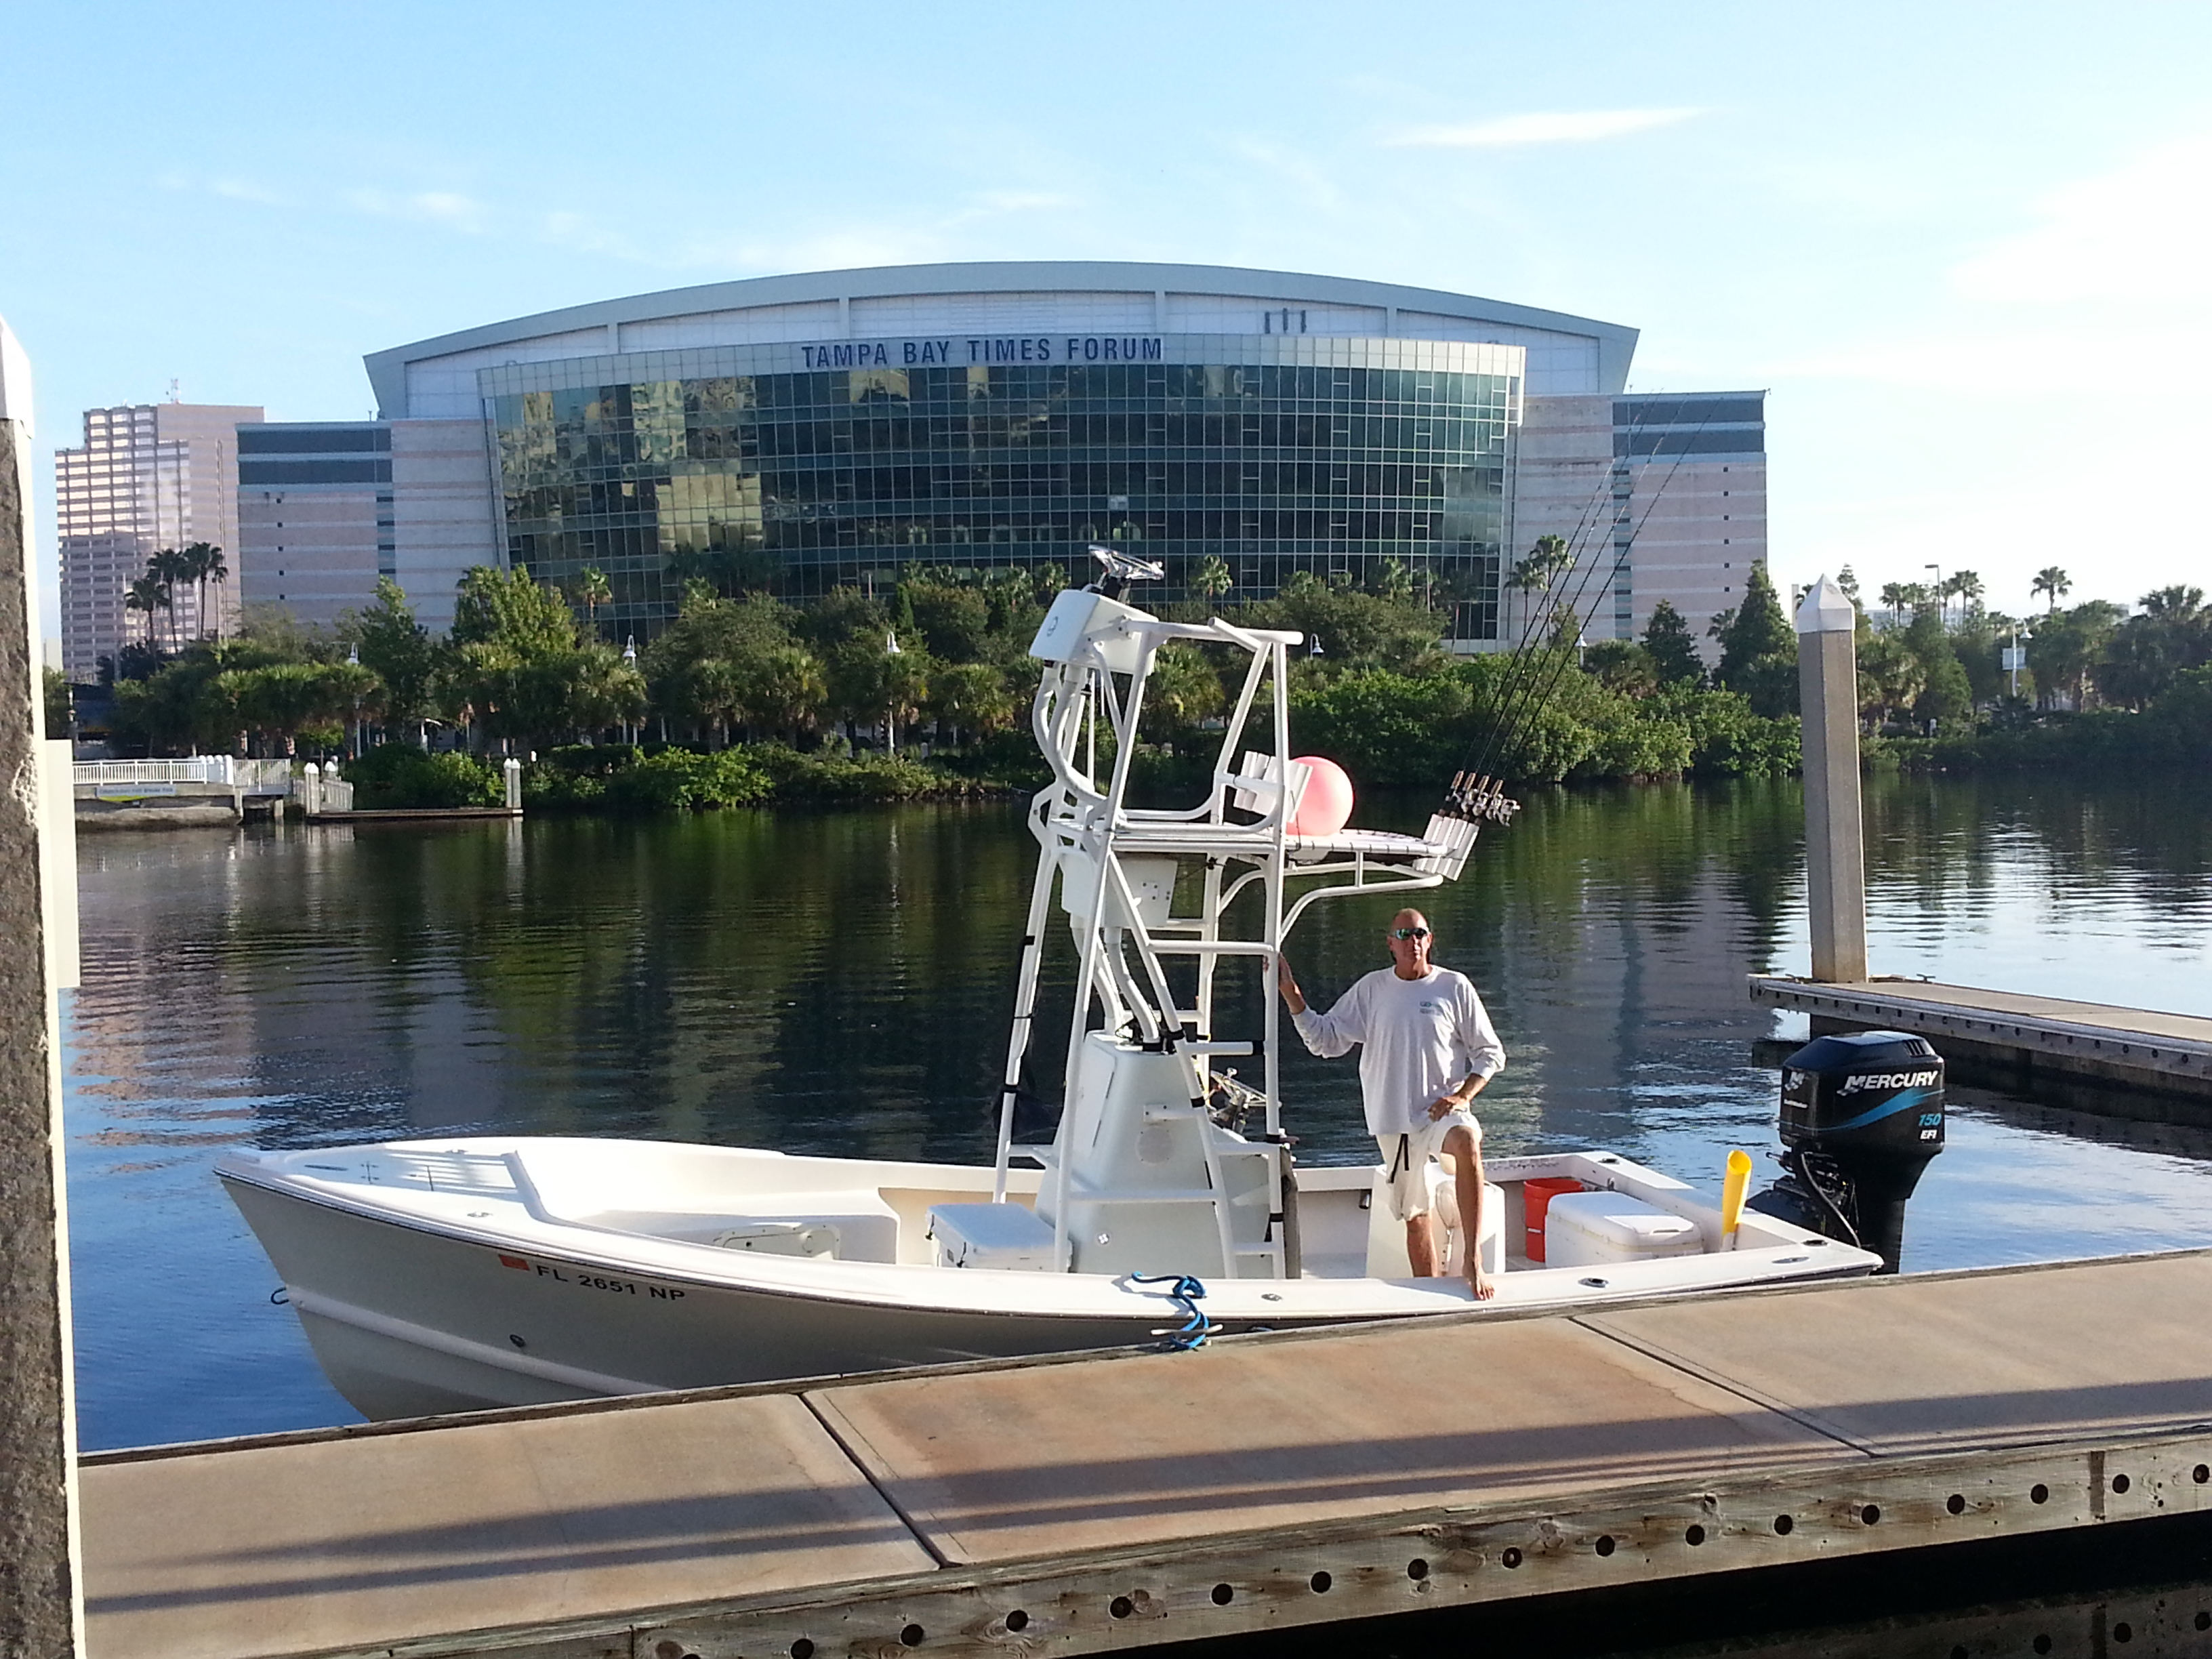 Retail stores fishing supplies in tampa fl tampa for Charter fishing tampa